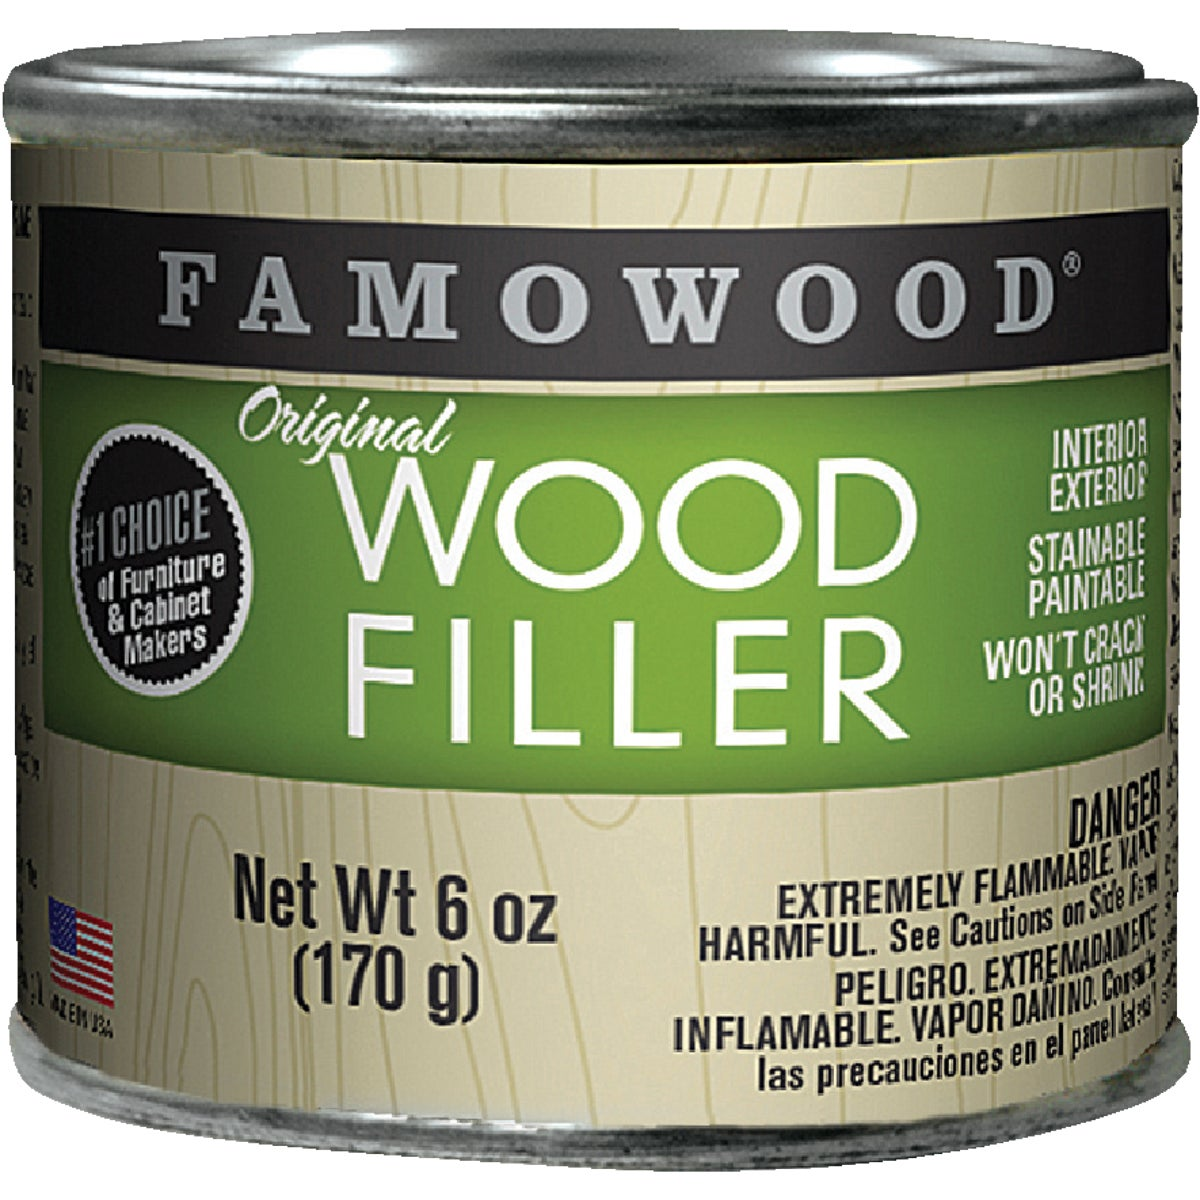 1/4PT OAK WOOD FILLER - 36141128 by Eclectic Prod Inc